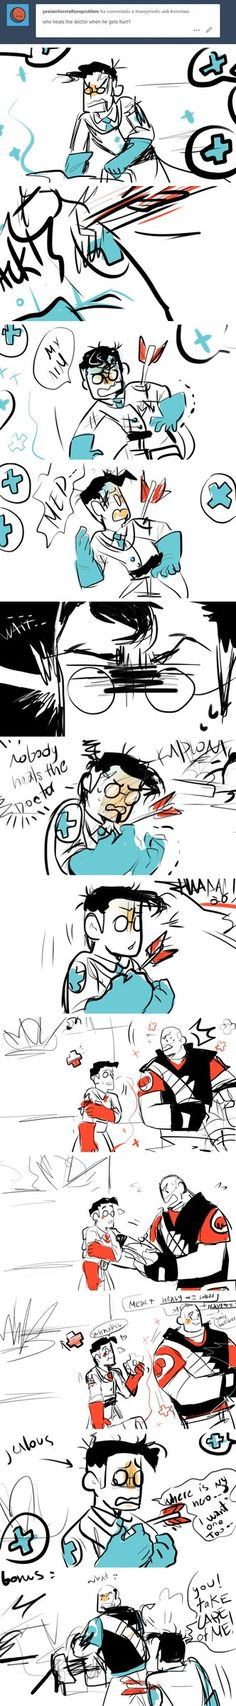 NOBODY CARES THE MEDIC by Konniwa